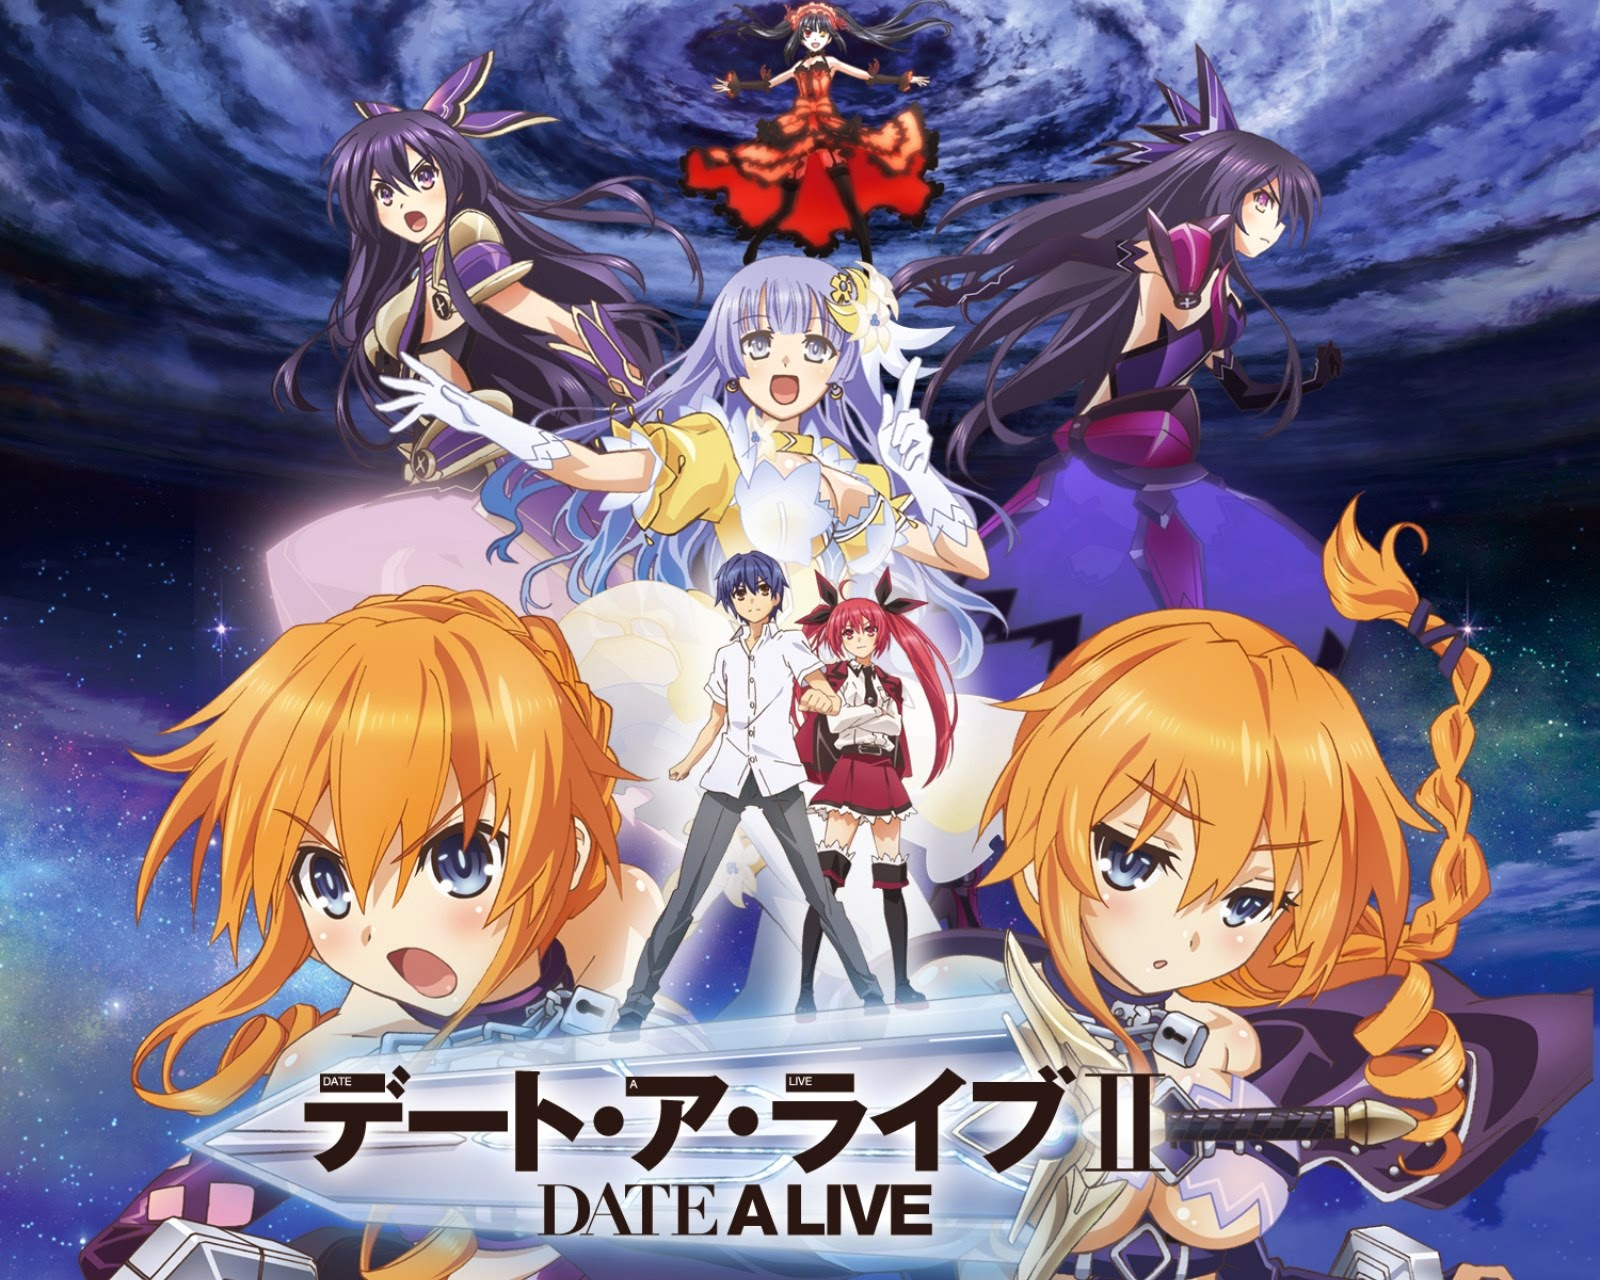 Date a live season 2 episode 1 in Sydney